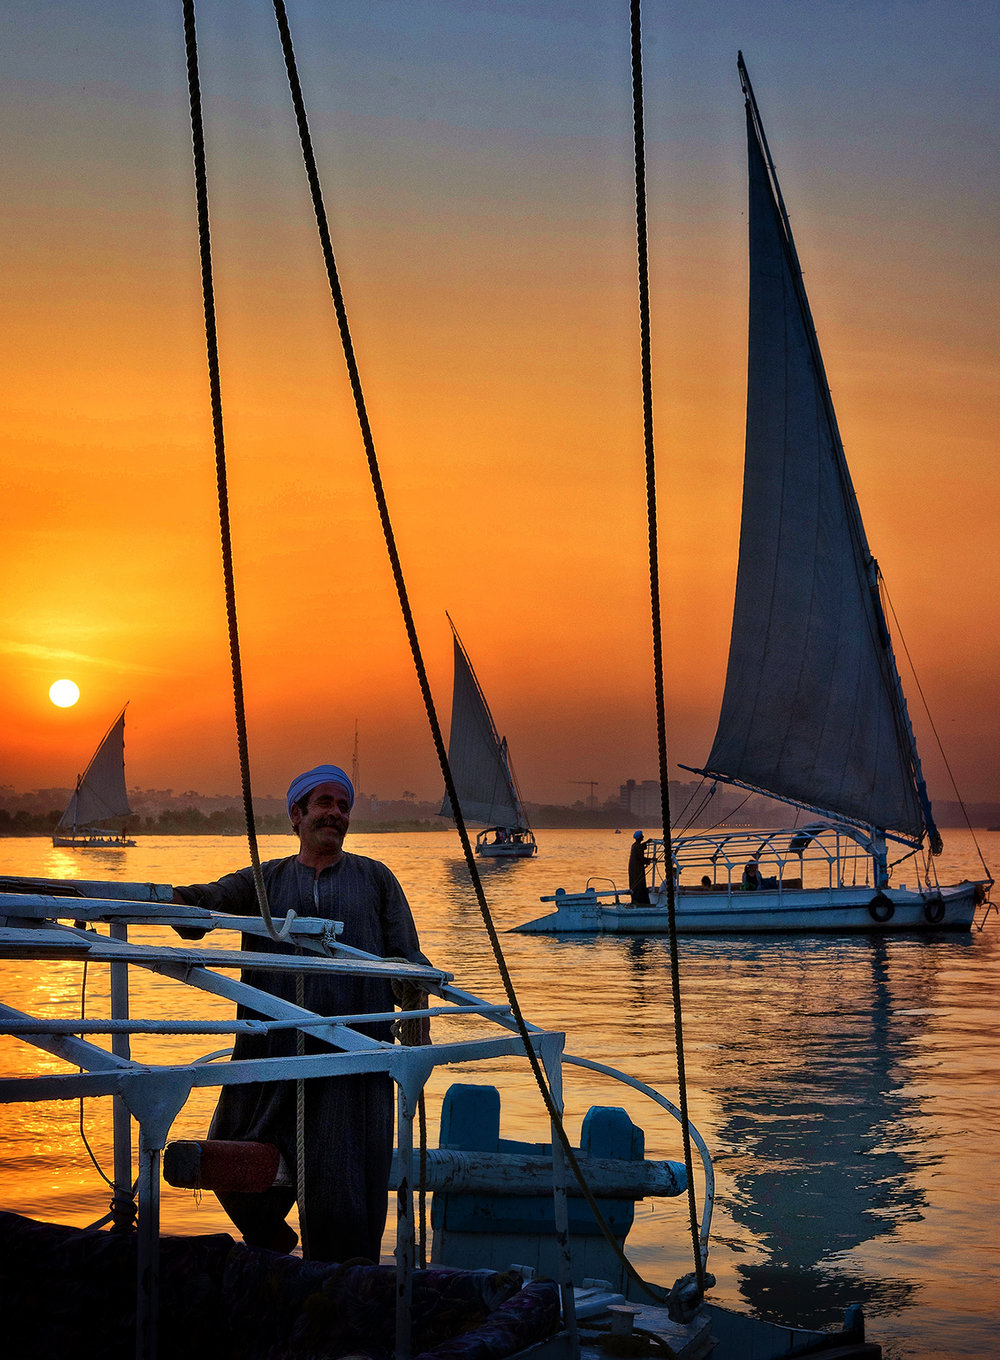 Take a felucca sailboat ride to see the grandeur of the Nile